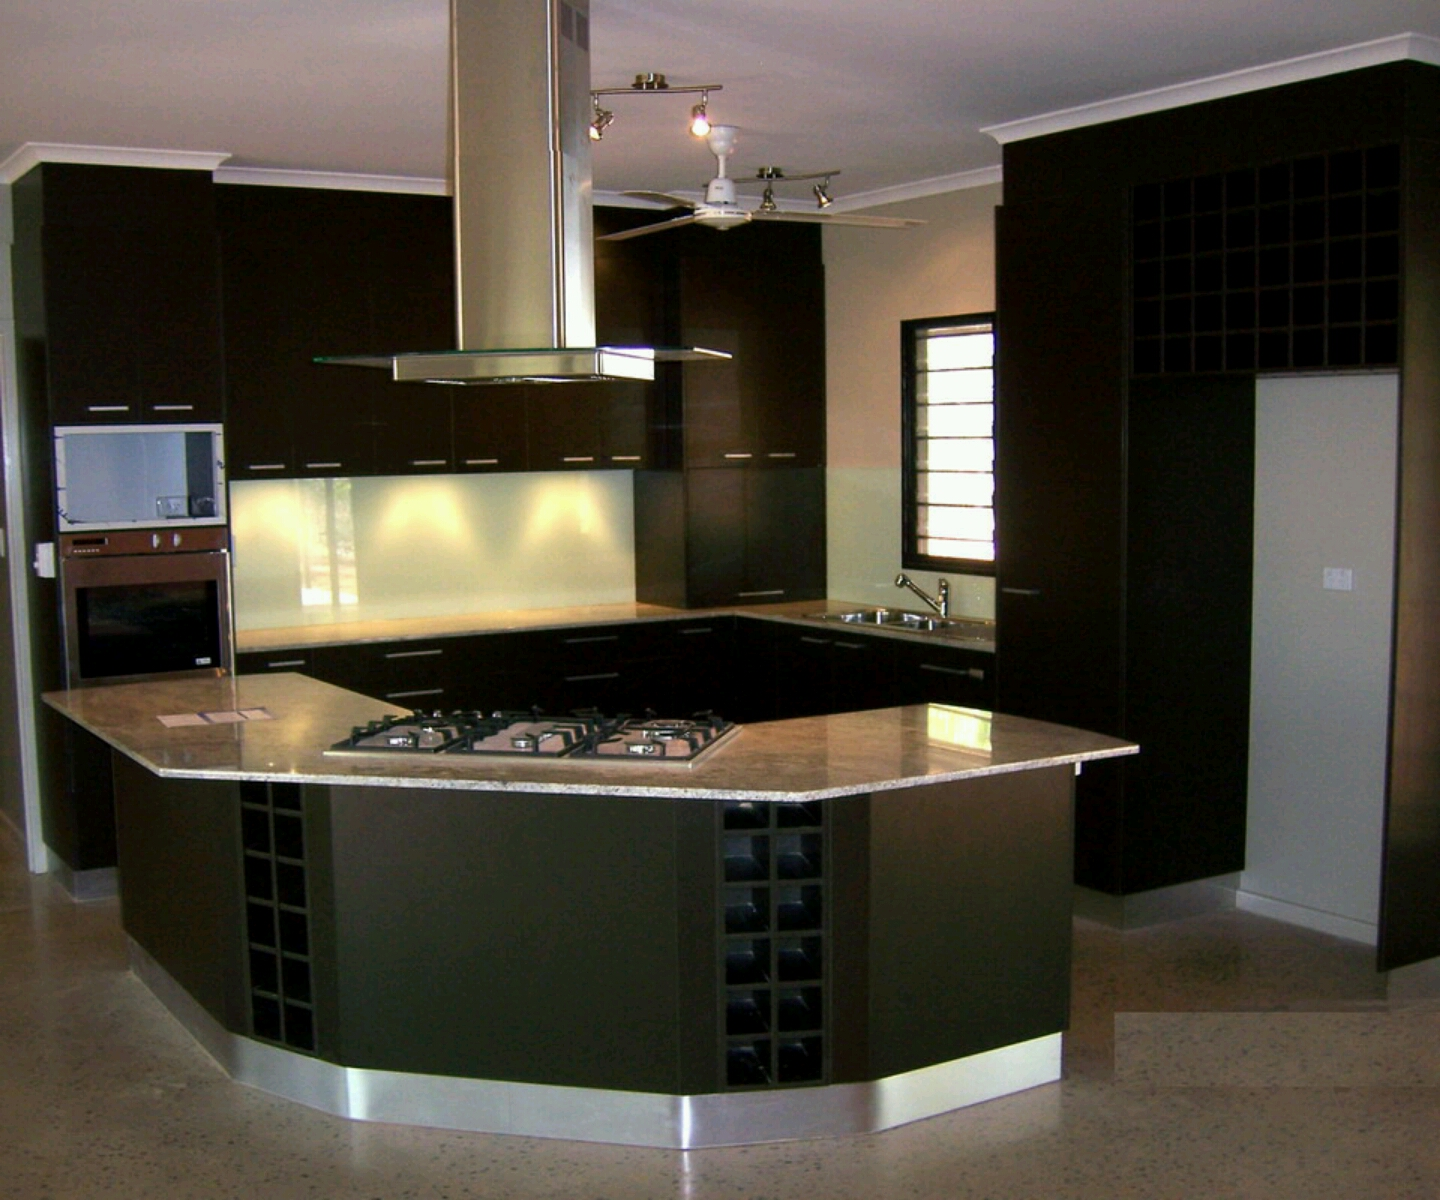 home designs latest modern kitchen cabinets designs ideas views comments home kitchen design display